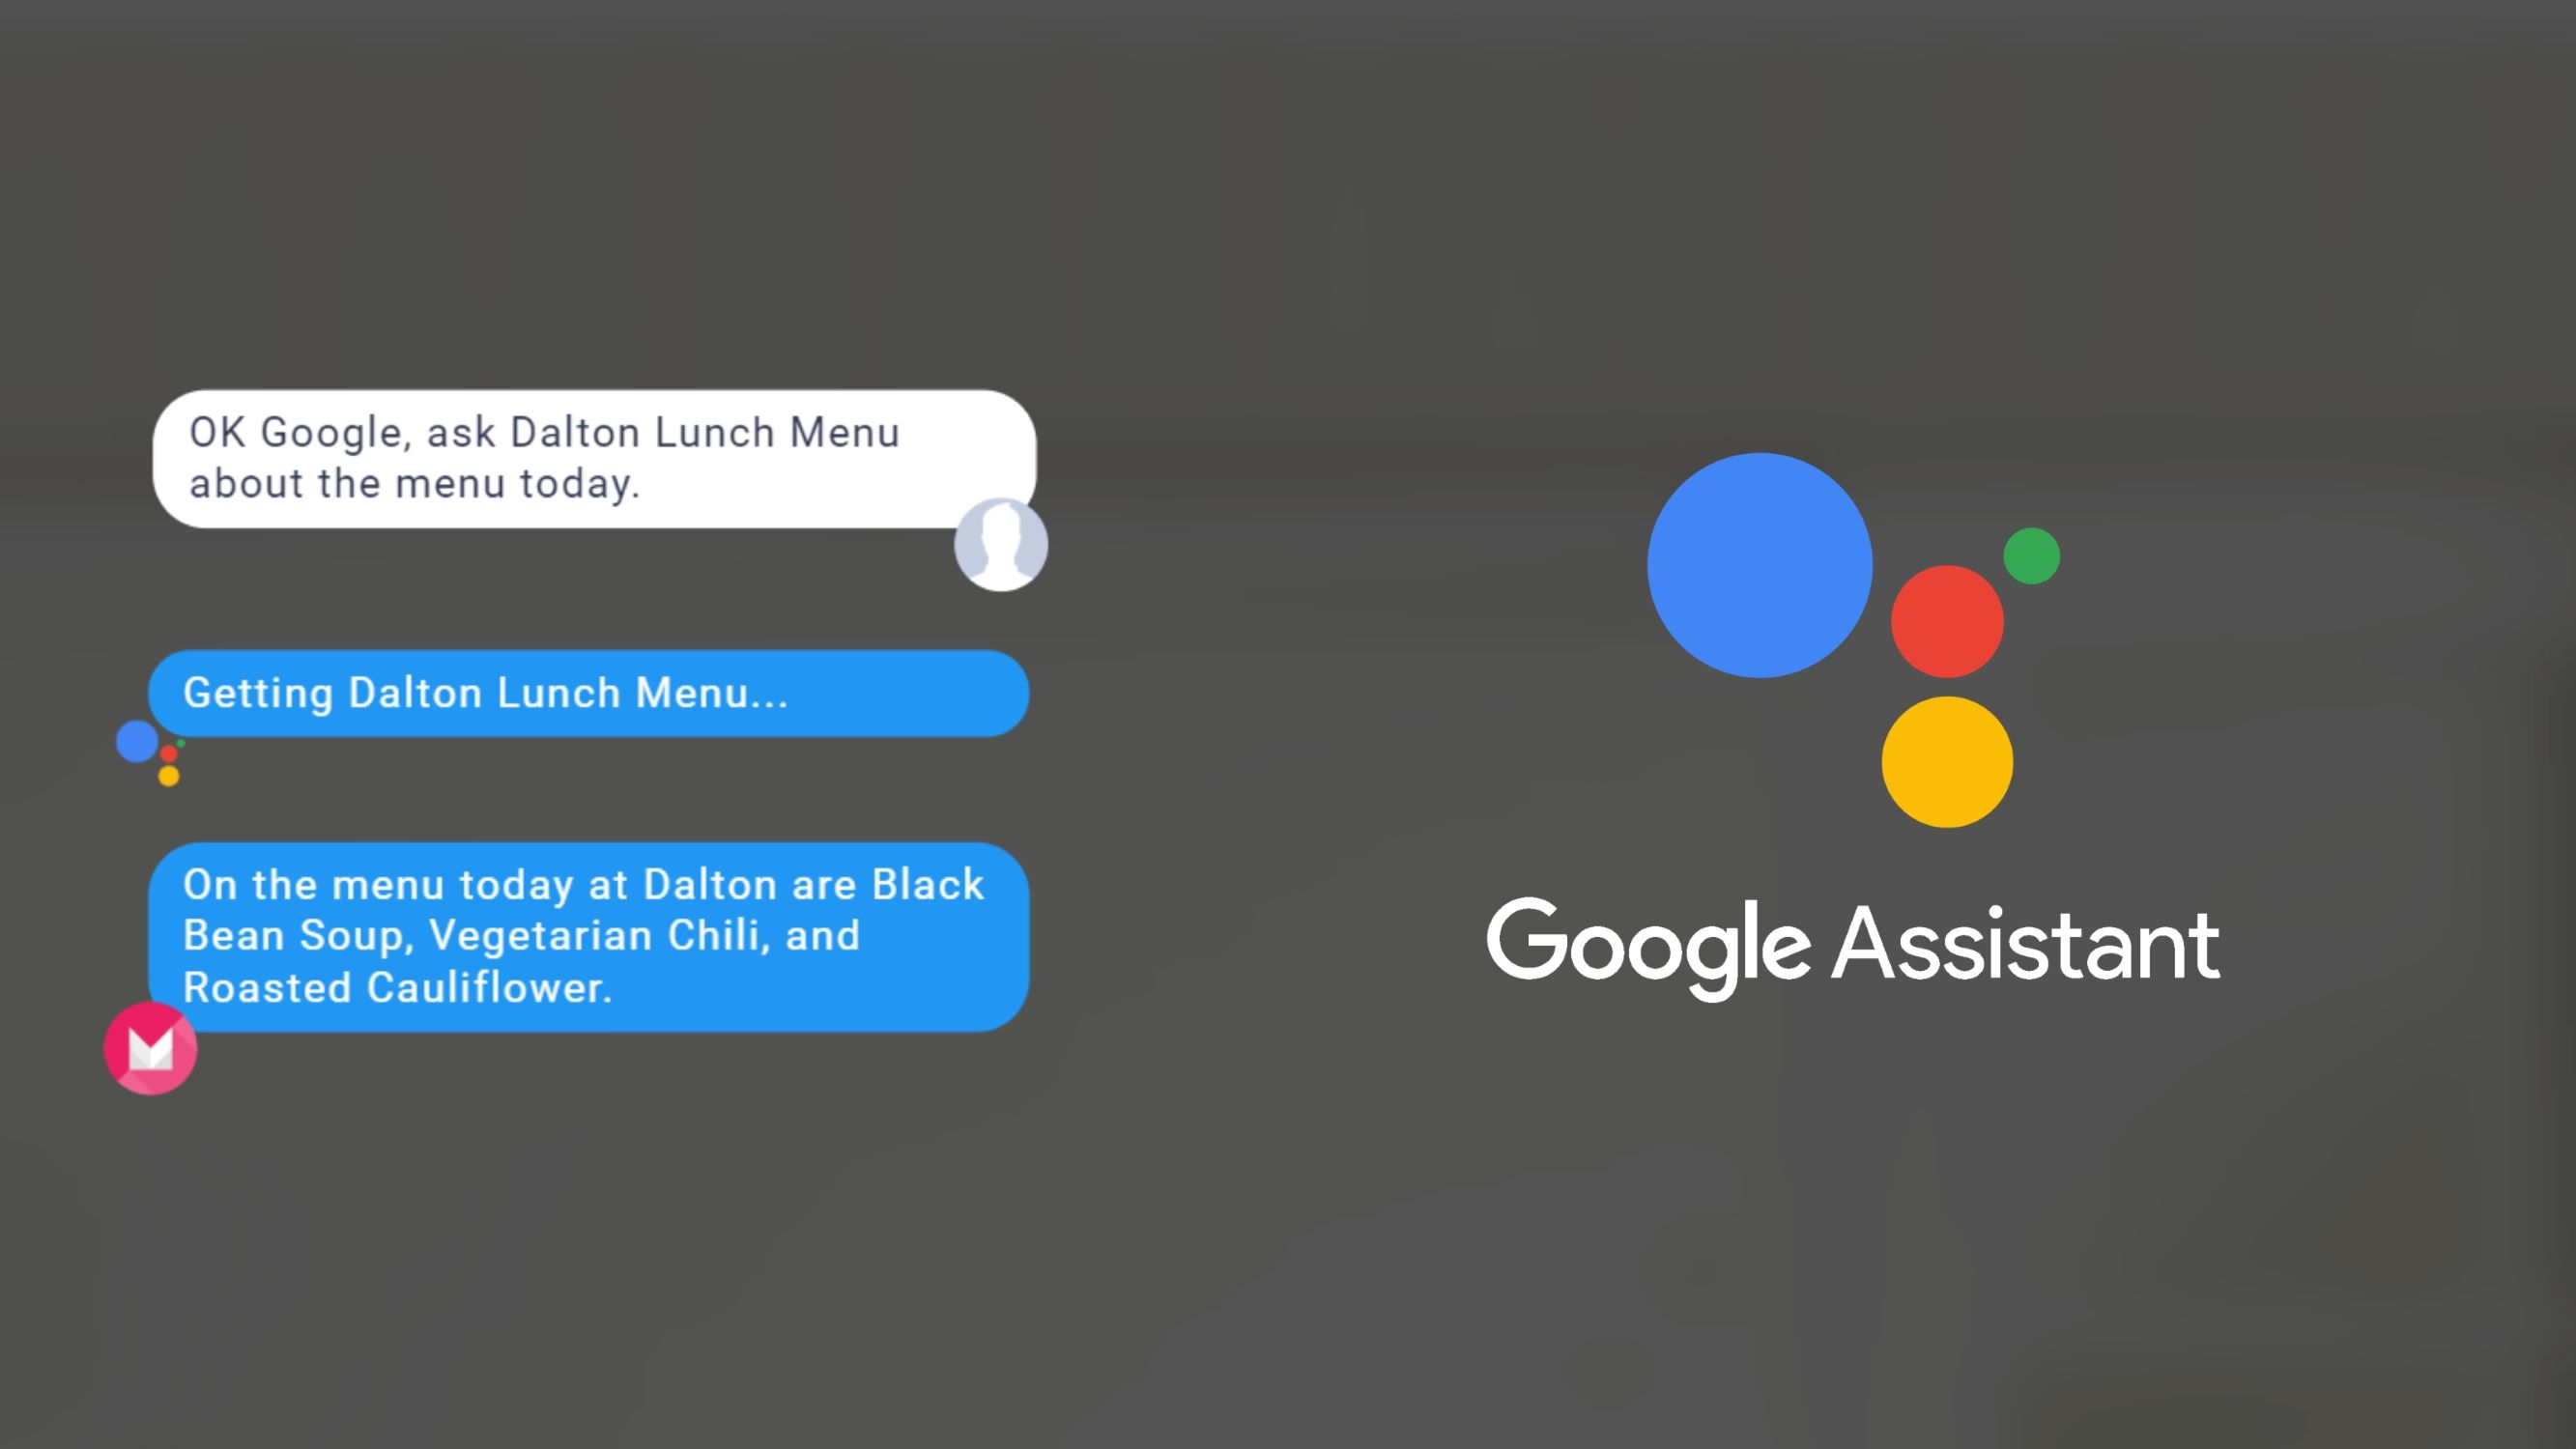 Dalton Lunch Menu Google Assistant skill in action